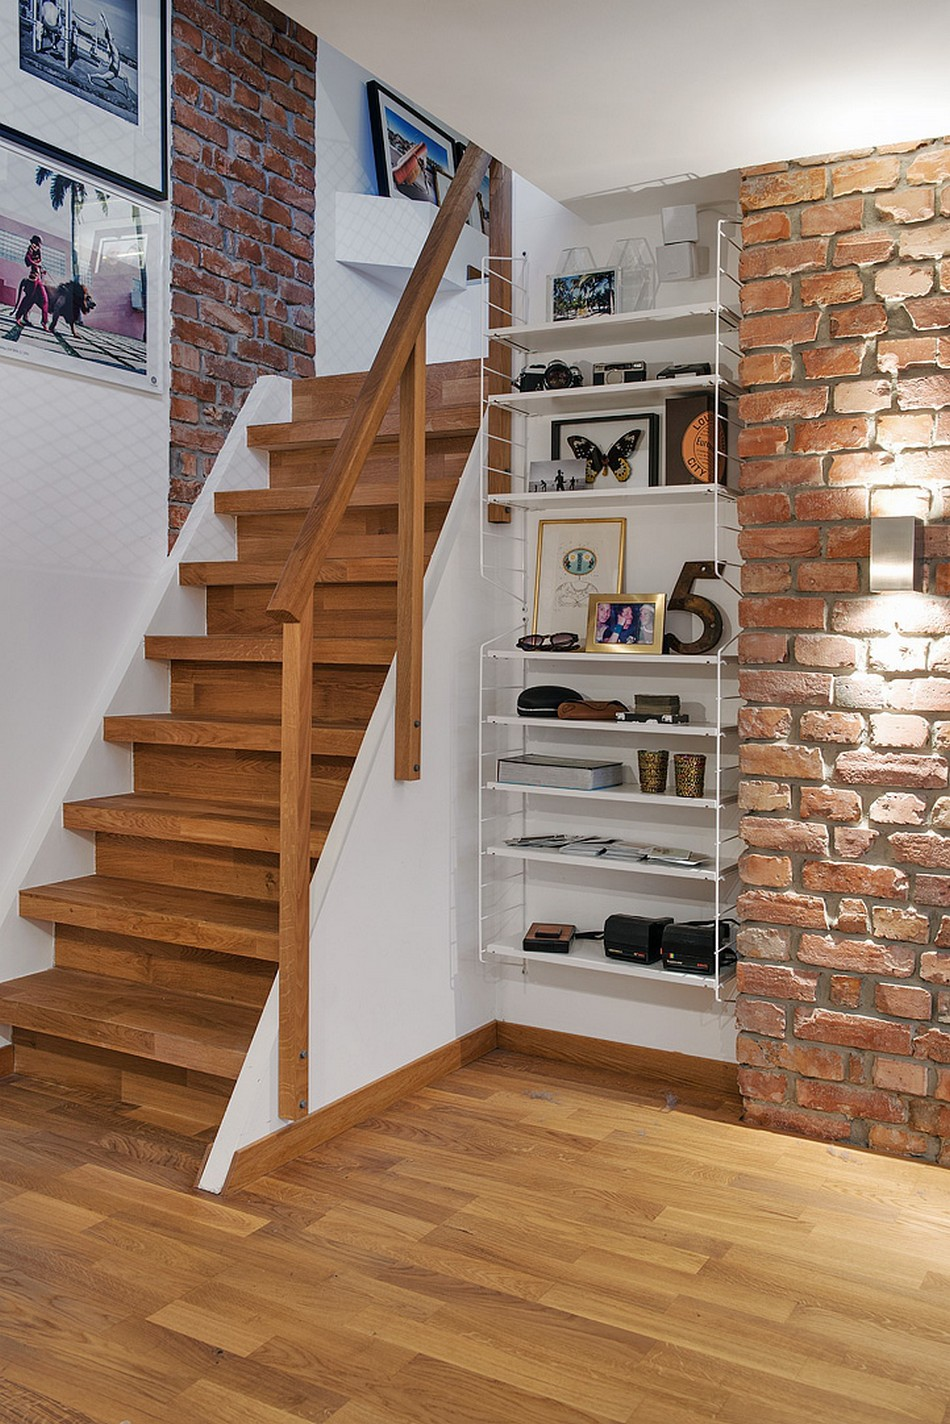 Swedish Private House Design Ideas Mix. Standart stairs near the storage and brickwork wall